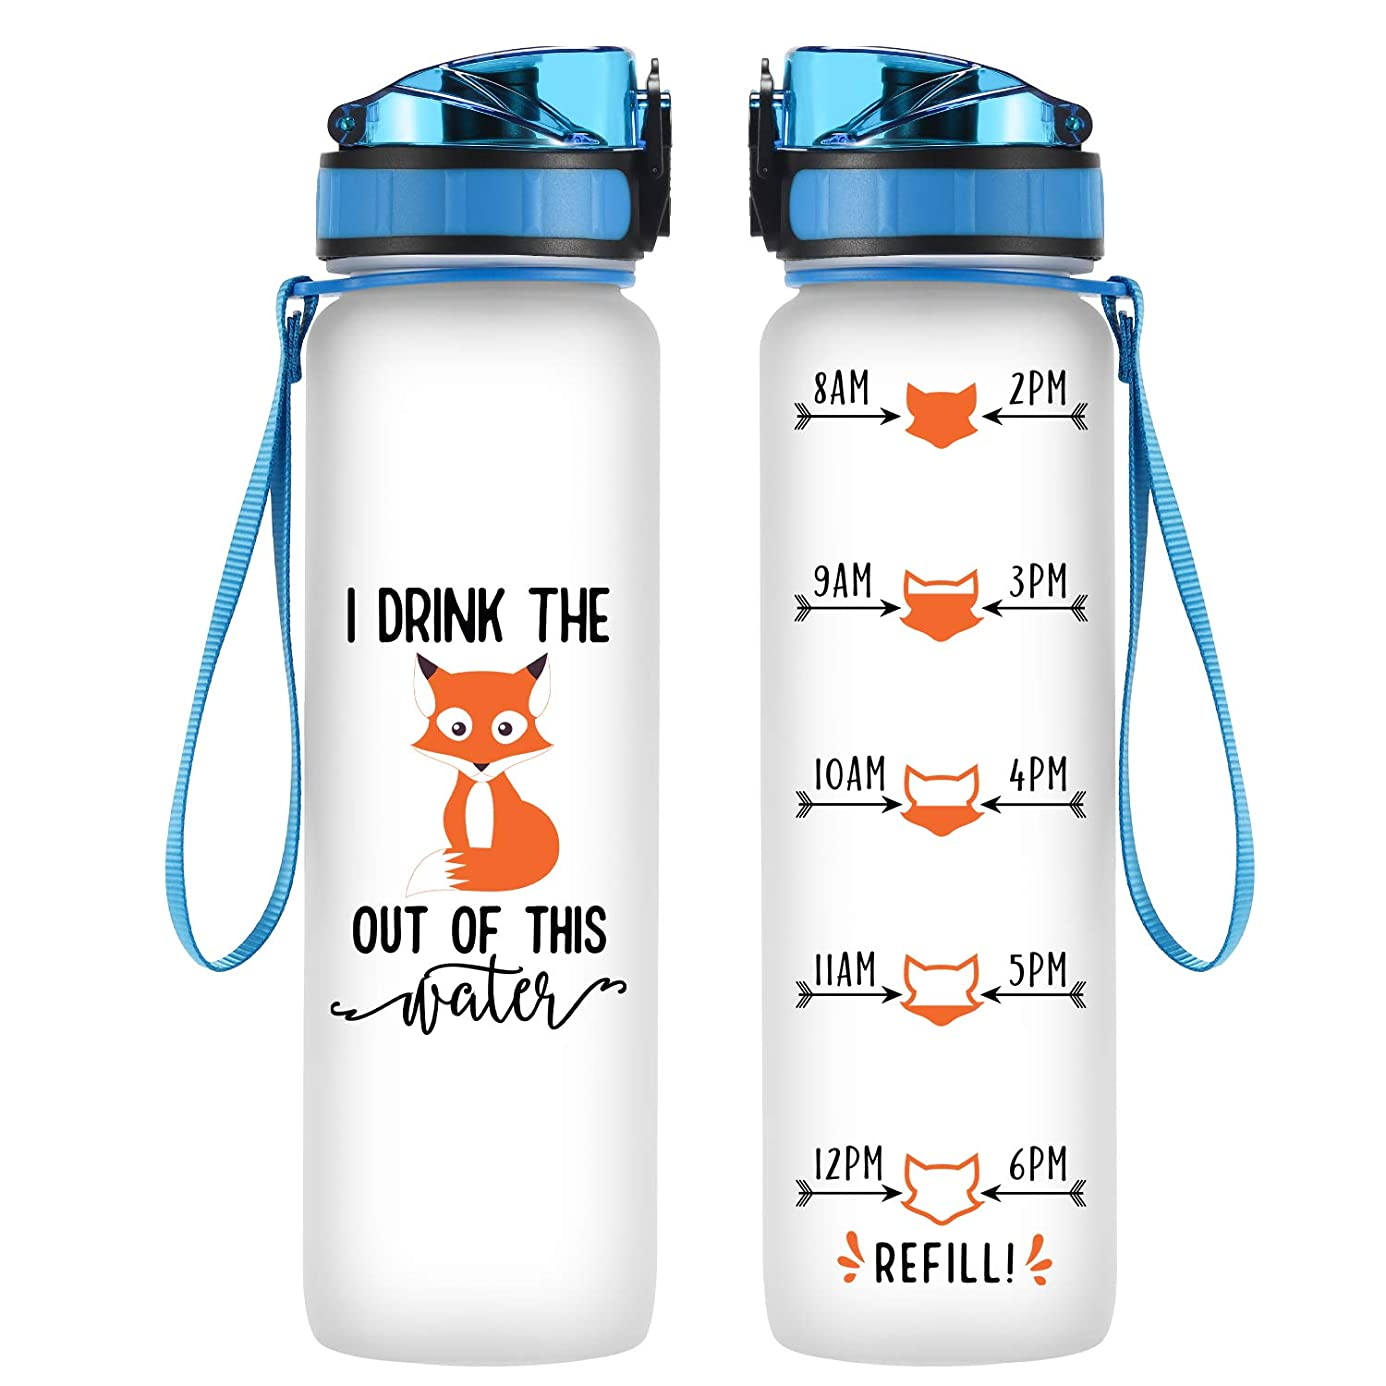 Coolife 32oz 1 Liter Motivational Tracking Water Bottle with Hourly Time Marker | I Drink The Fox Out of This Water | Drink More Water | Funny Birthday Gifts for Women, Mom, Best Friend, Coworkers